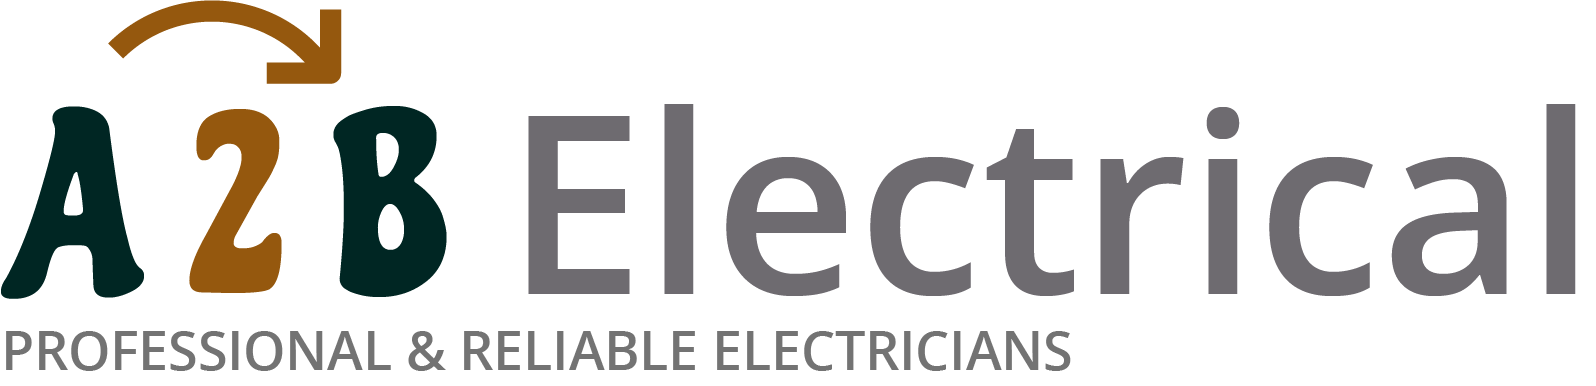 If you have electrical wiring problems in Ruislip, we can provide an electrician to have a look for you.